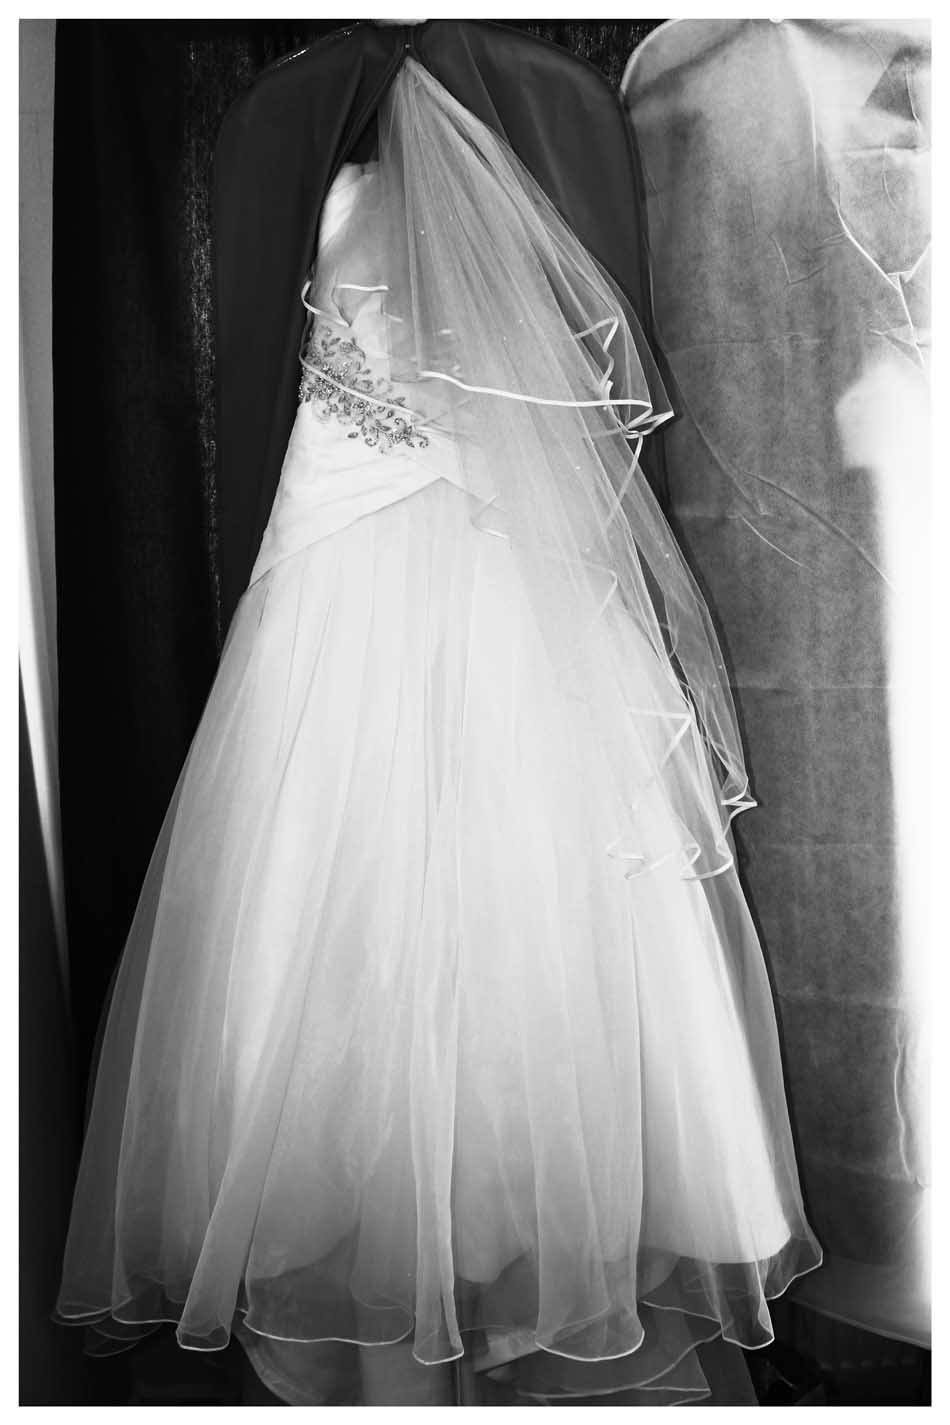 The DRESS Photos by  Simeon Thaw copyright 2015 (100).jpg